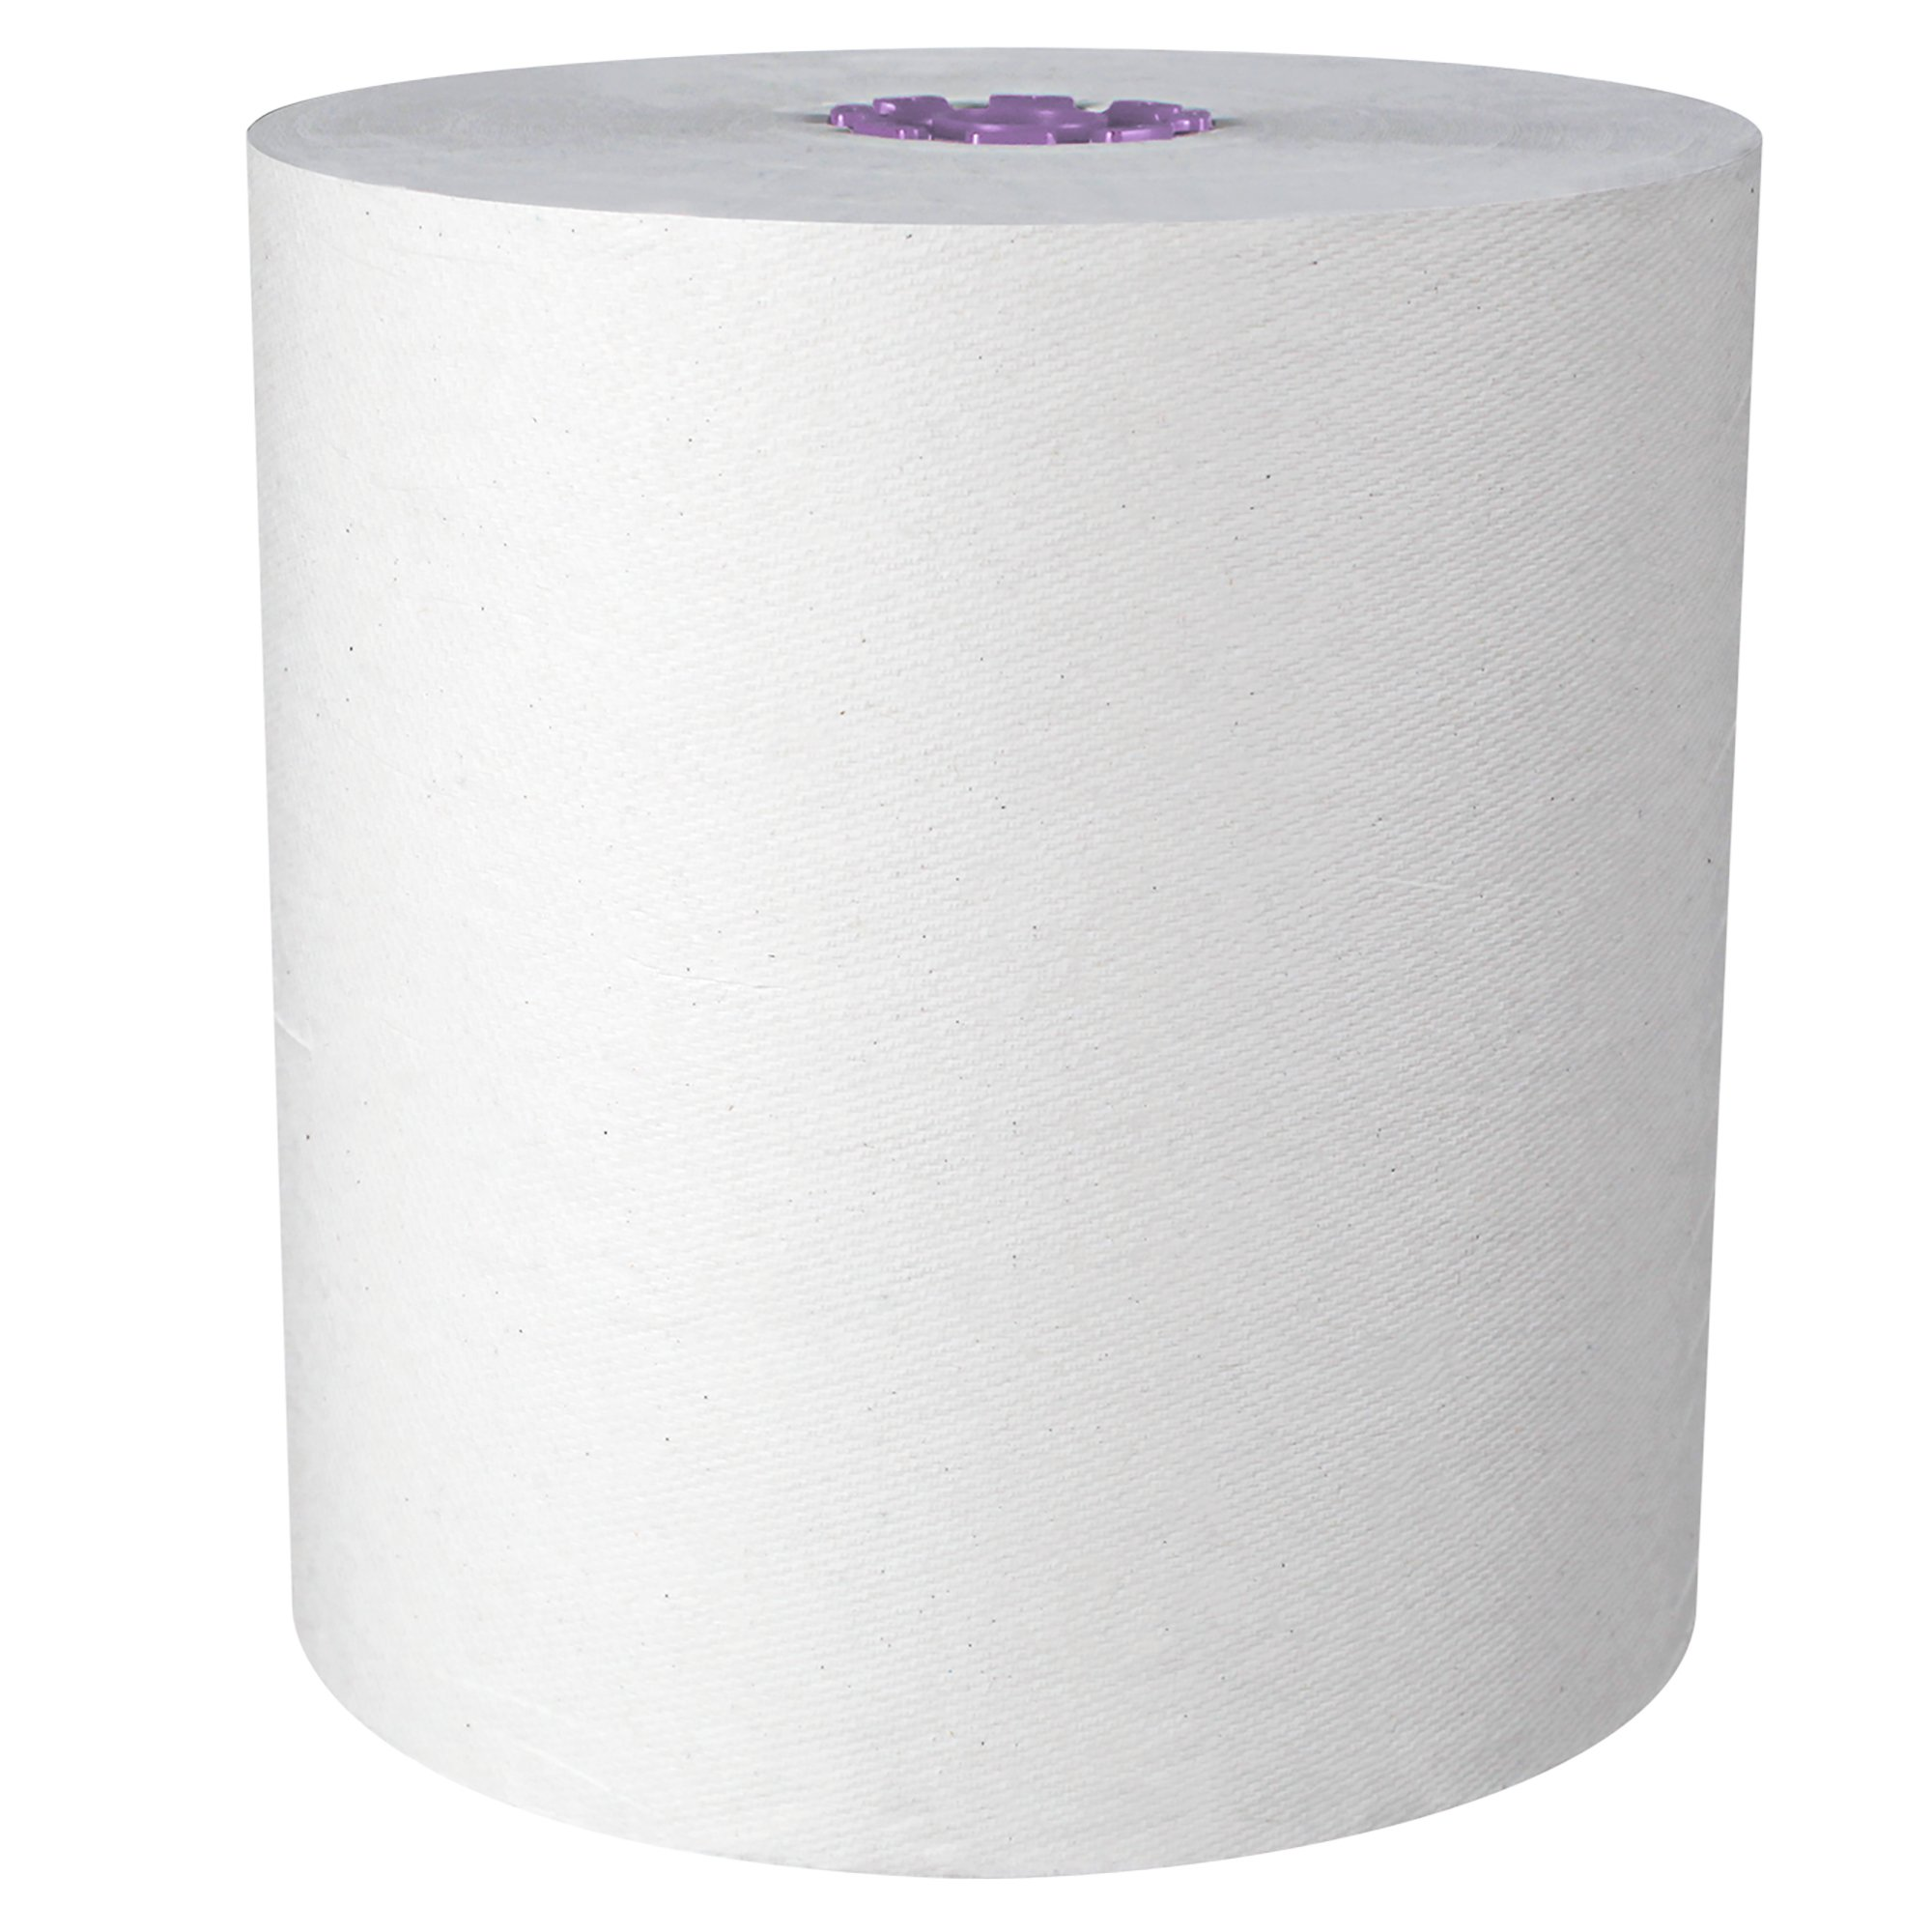 Scott Essential High Capacity Hard Roll Paper Towels (02001), Fast Change with Scott Essential Dispenser, Unperforated, White, 950' / Roll, 6 Rolls / Case, 5,700' / Case